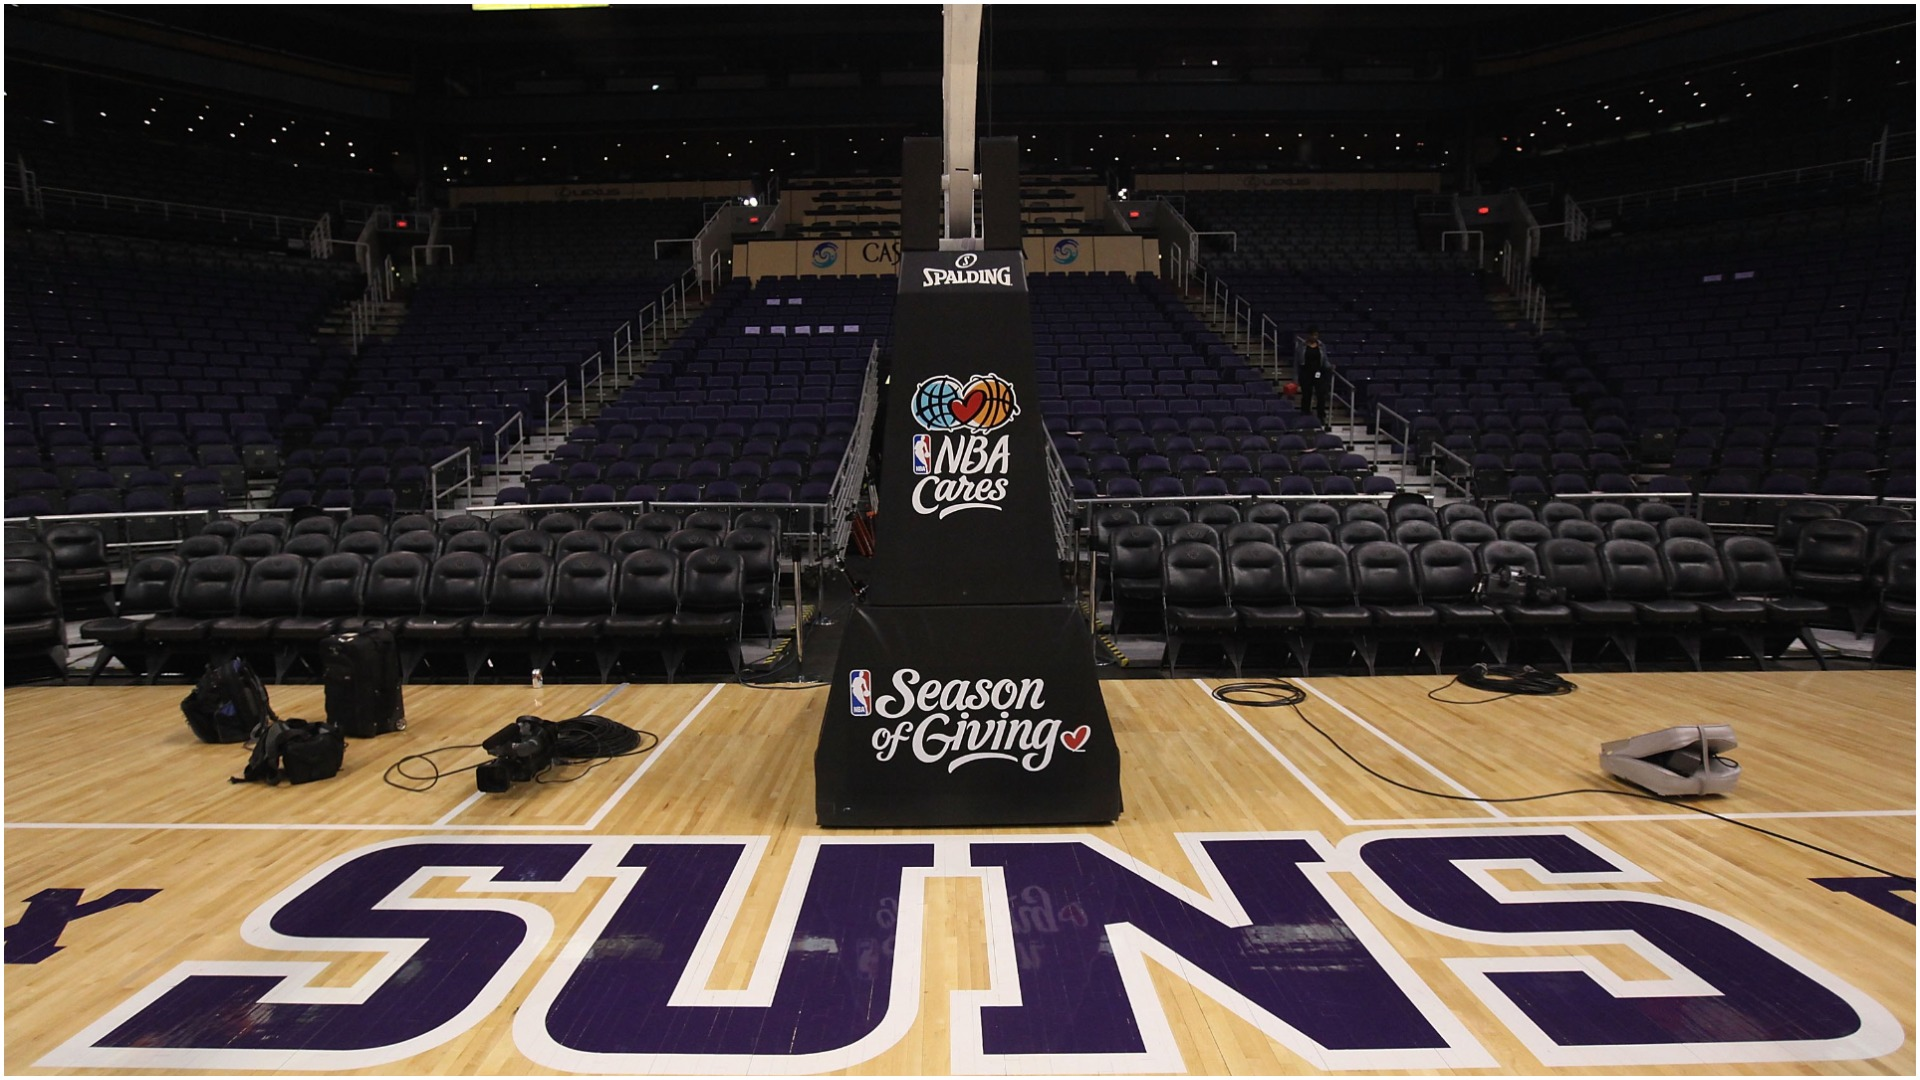 The NBA confirmed the Phoenix Suns do not have enough available players for Wednesday's game against the Atlanta Hawks.